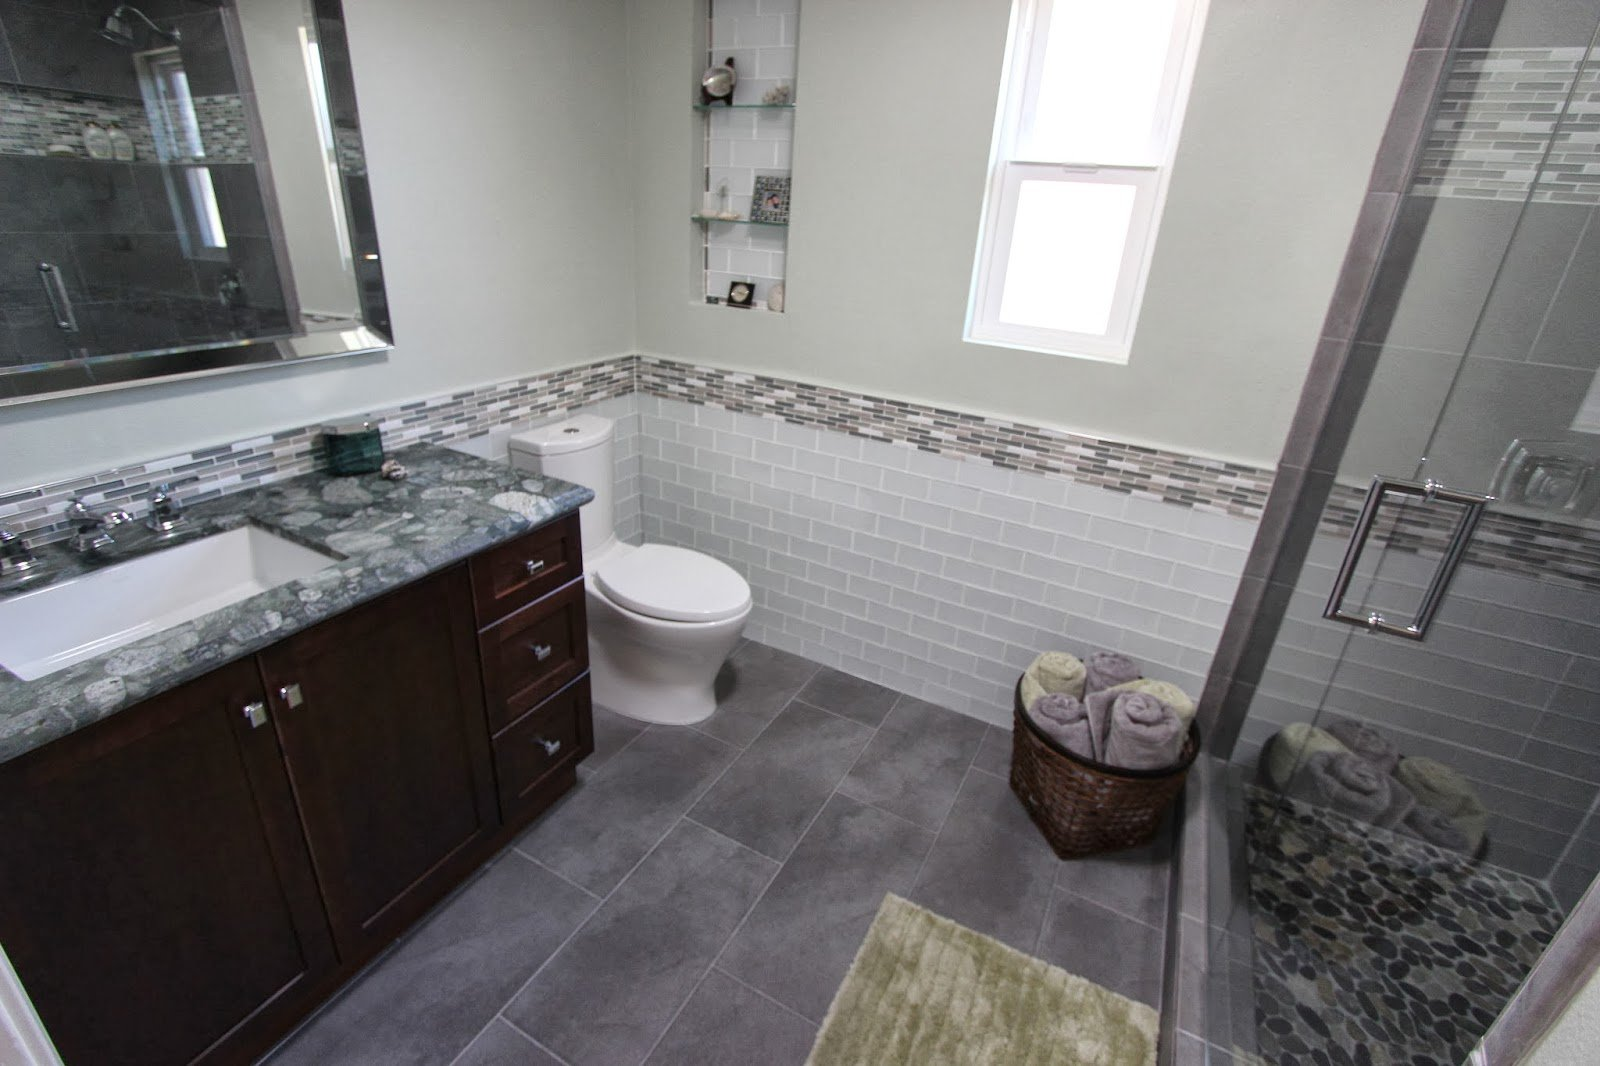 And If You Would Like Even More Ideas On Remodeling Small Bathrooms, Check  Out Our U201cBathroom Remodelingu201d Pinterest Board.